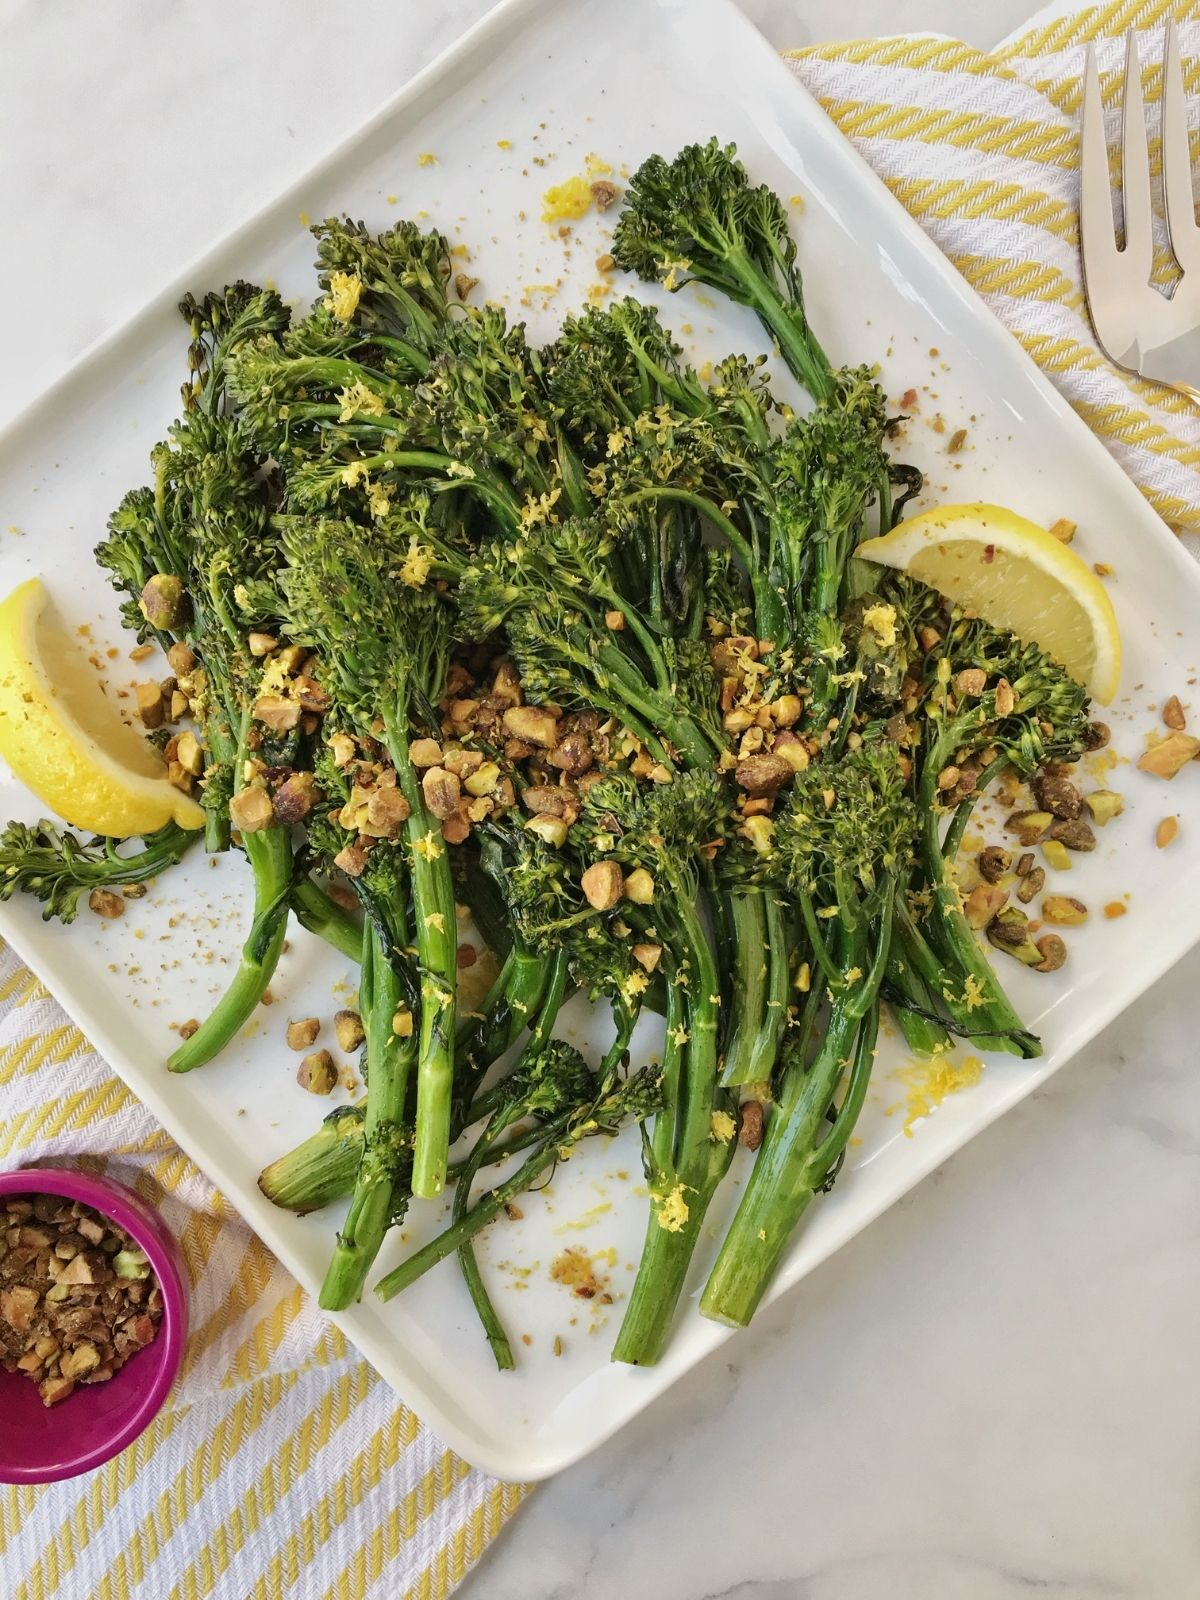 platter of broccolini garnished with nuts and lemon